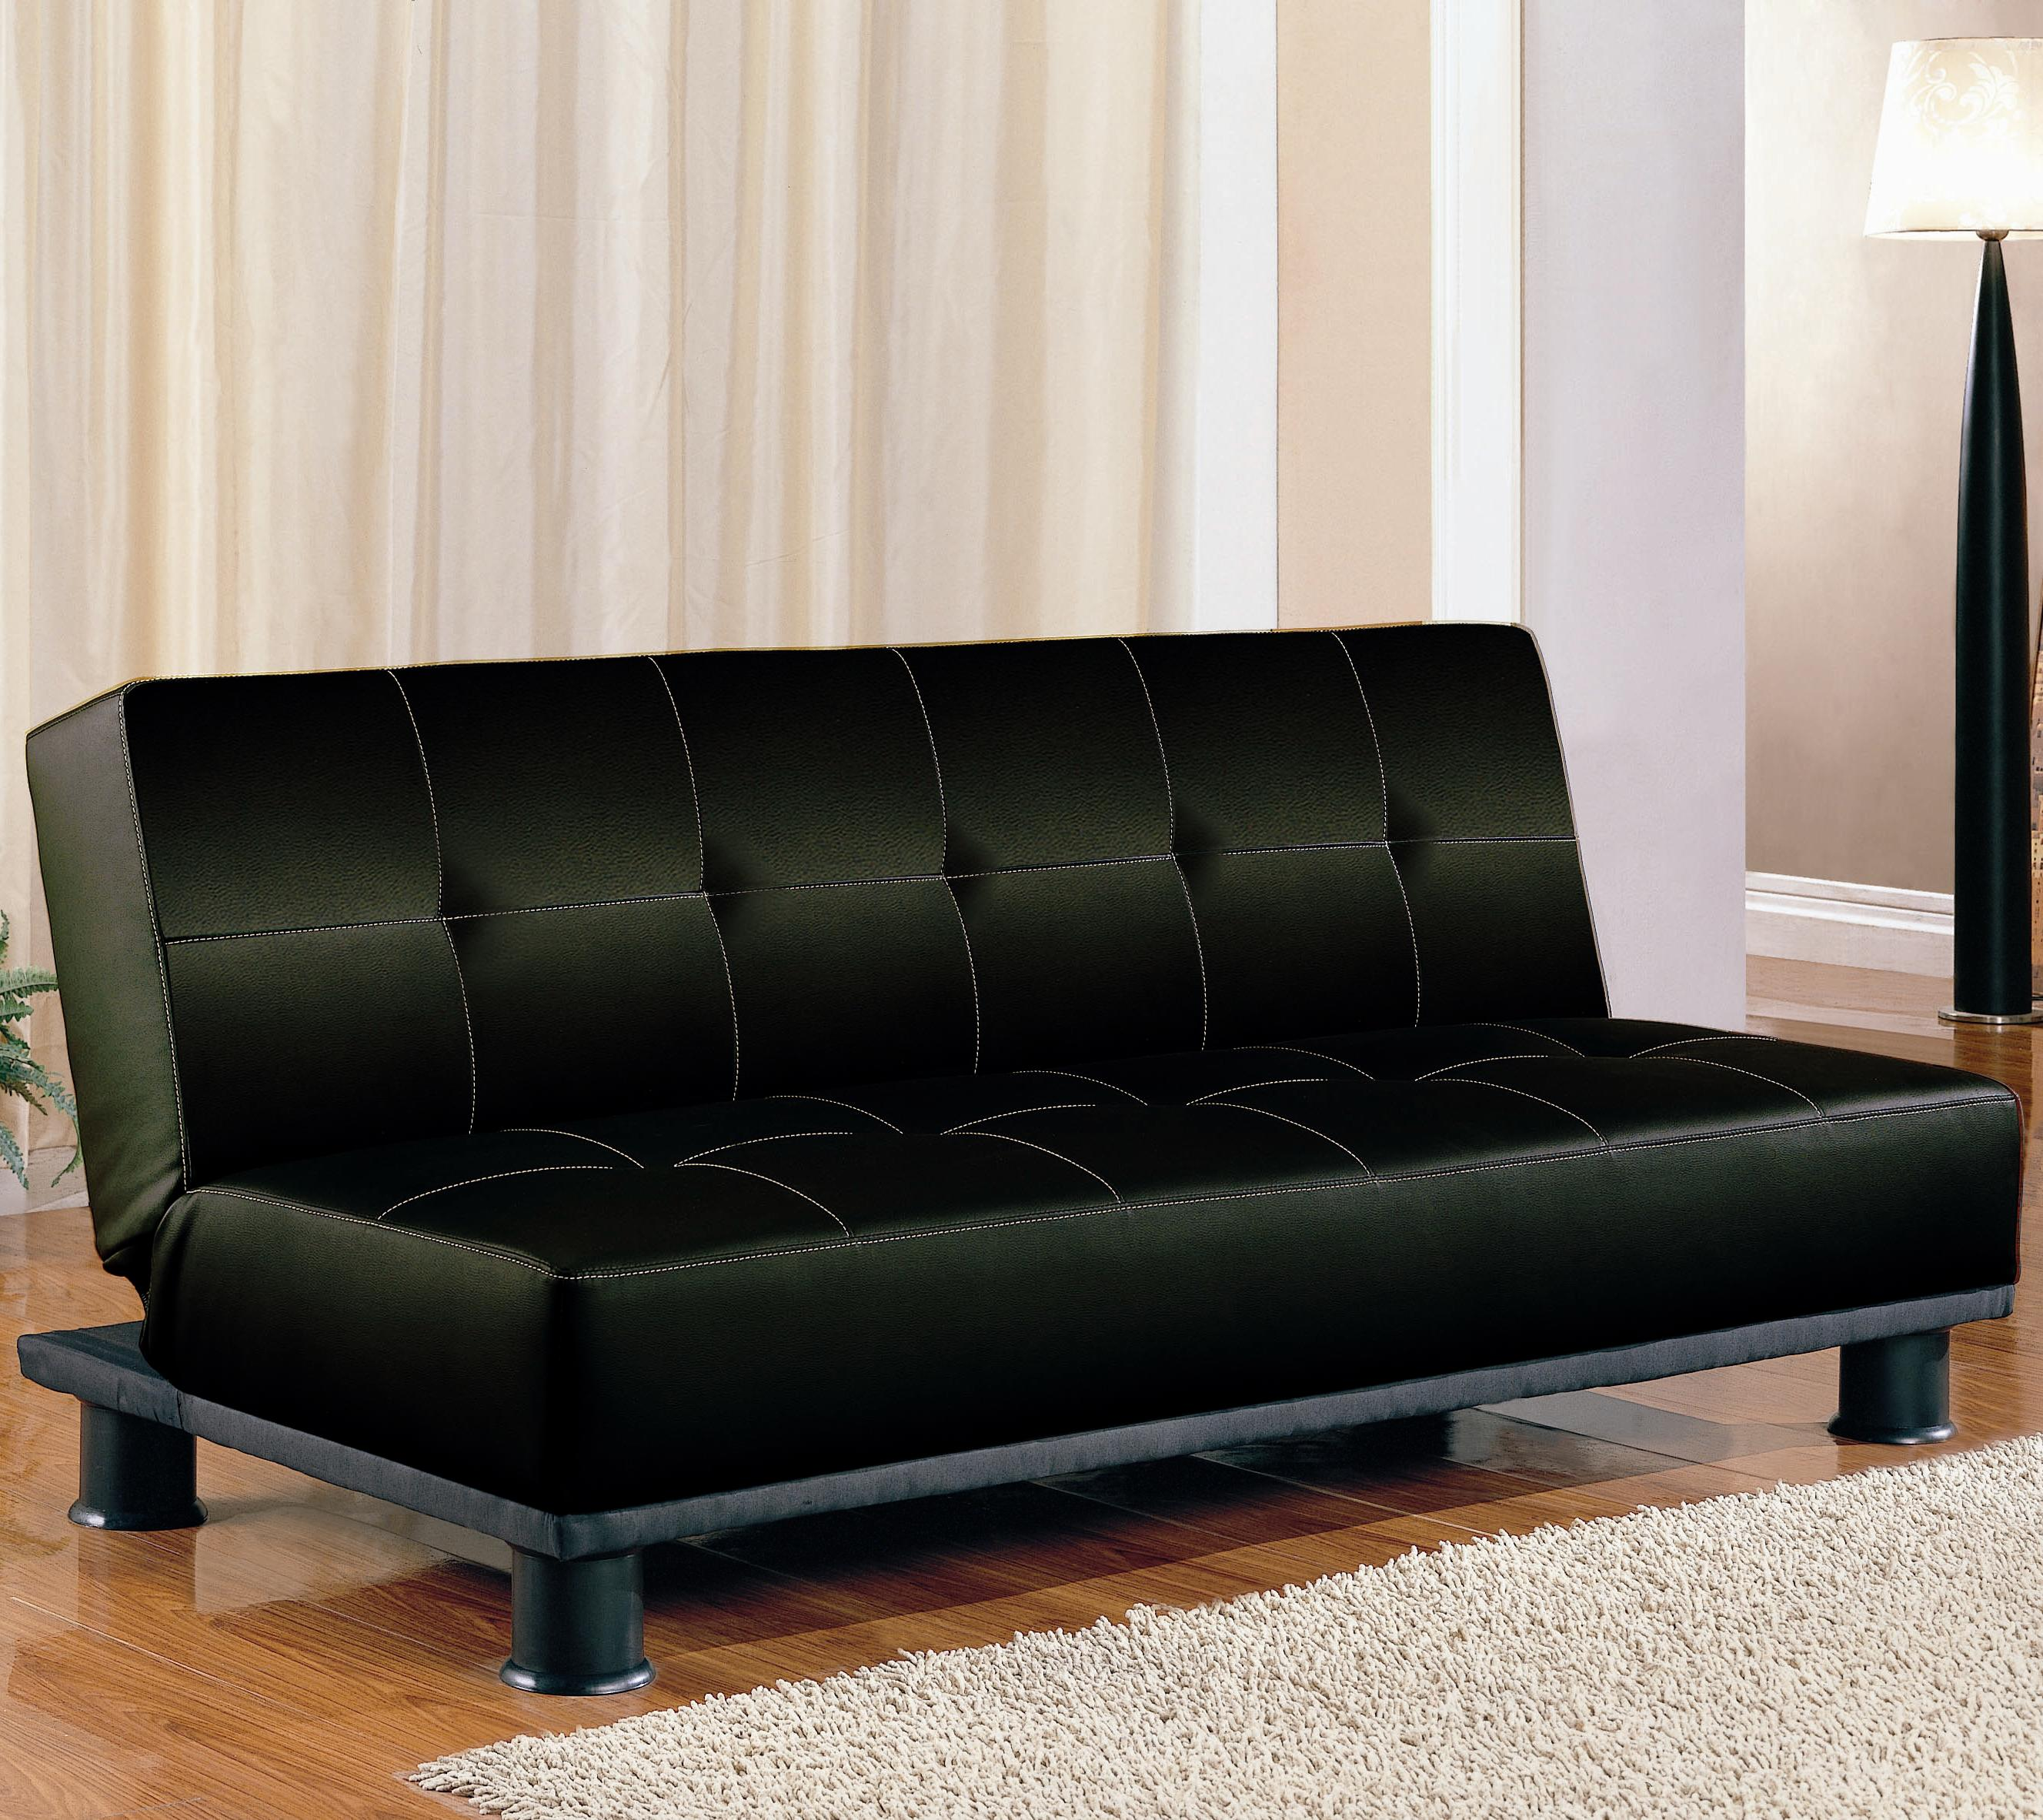 Coaster Sofa Beds And Futons Contemporary Armless Convertible Sofa Bed Value City Furniture Futons